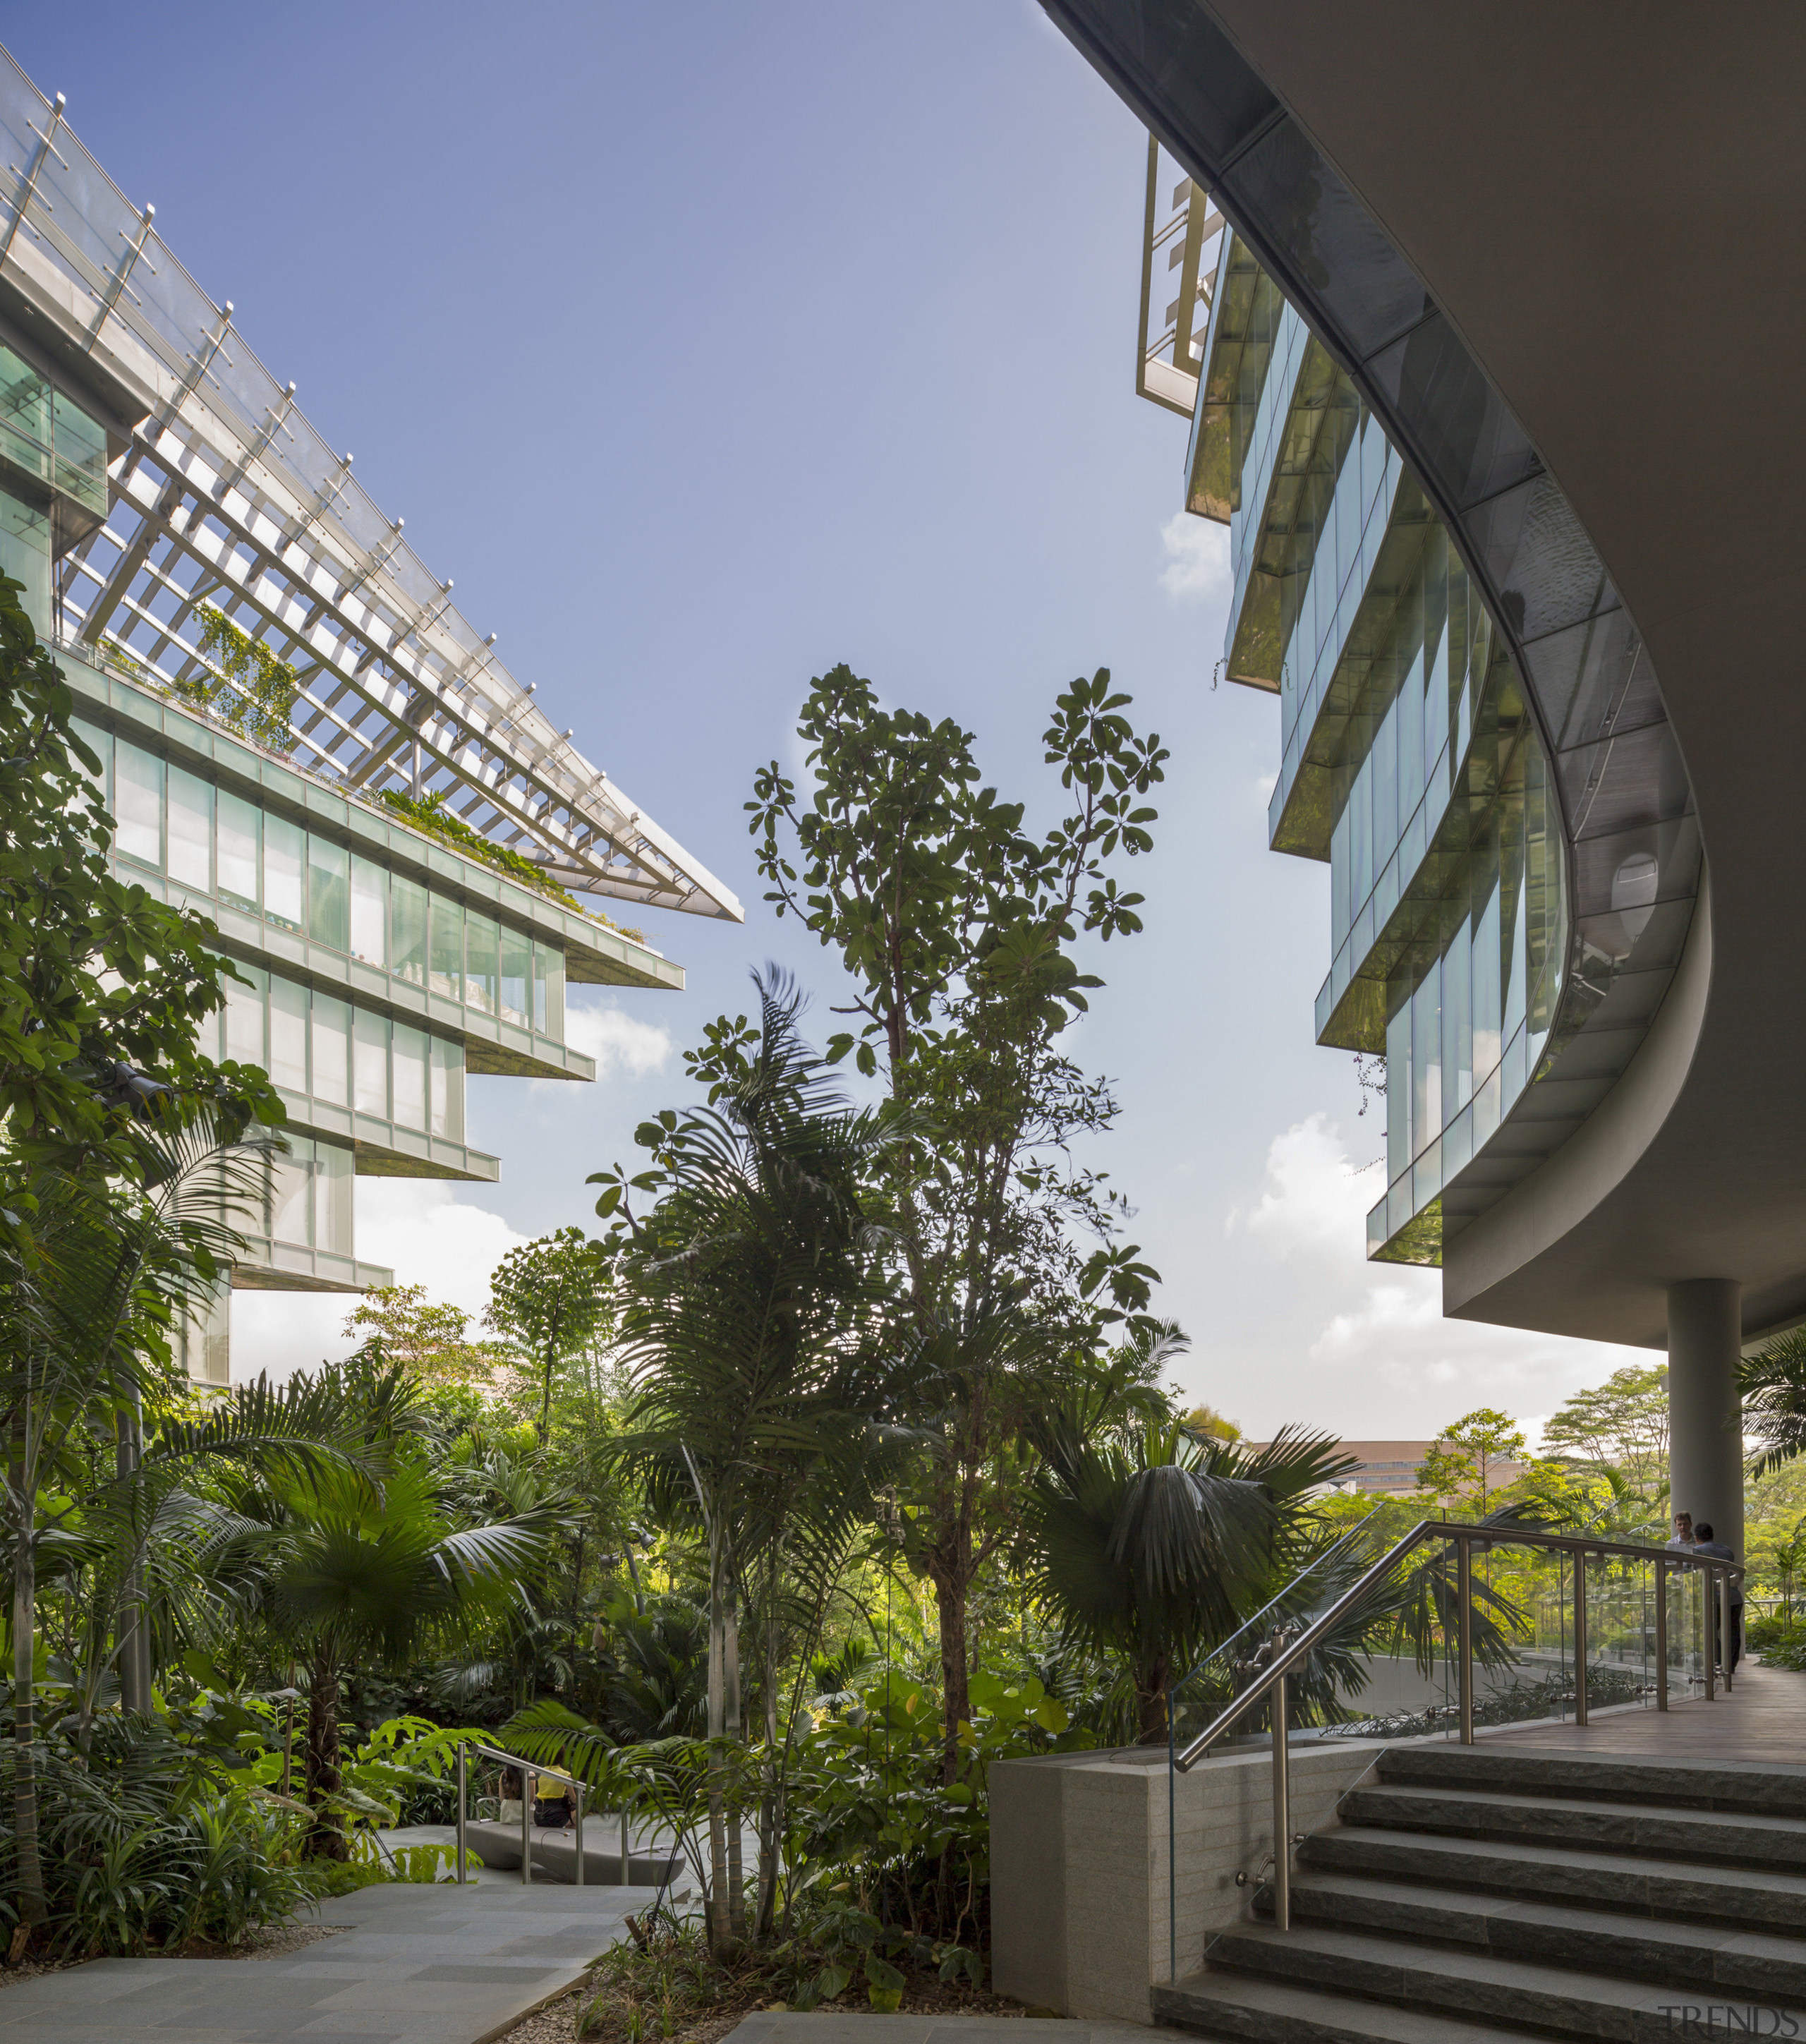 The Sandcrawler office building in Singapore has a architecture, arecales, building, condominium, daytime, house, mixed use, palm tree, real estate, sky, tree, urban design, black